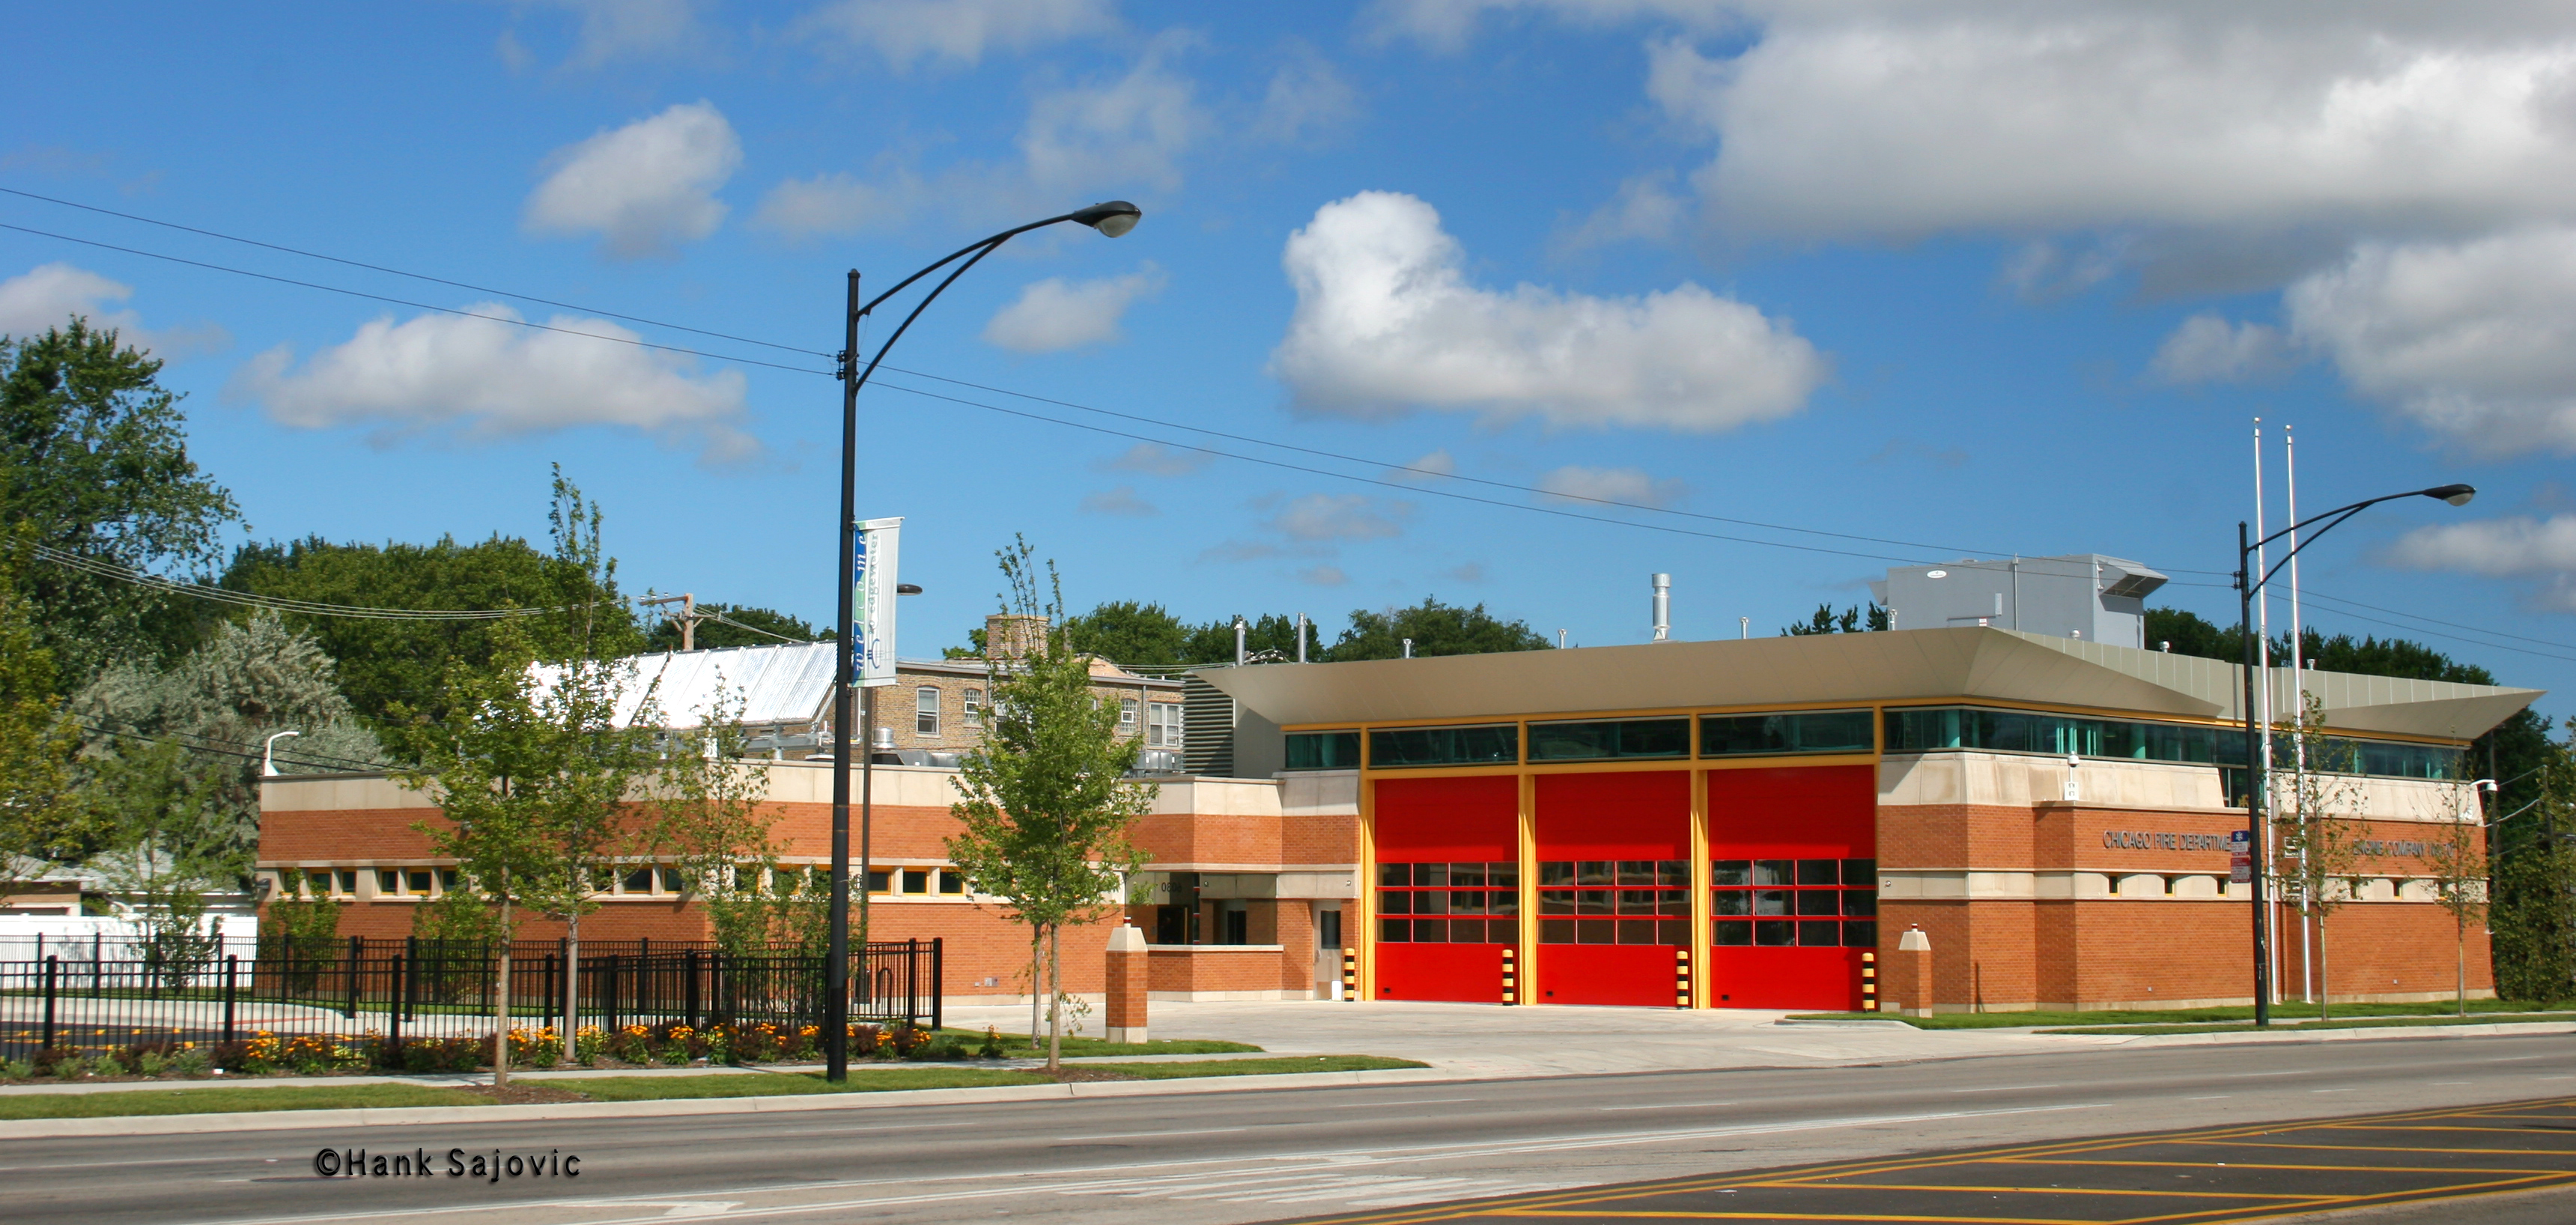 Chicago Fire Department Engine 59 & Engine 70's house